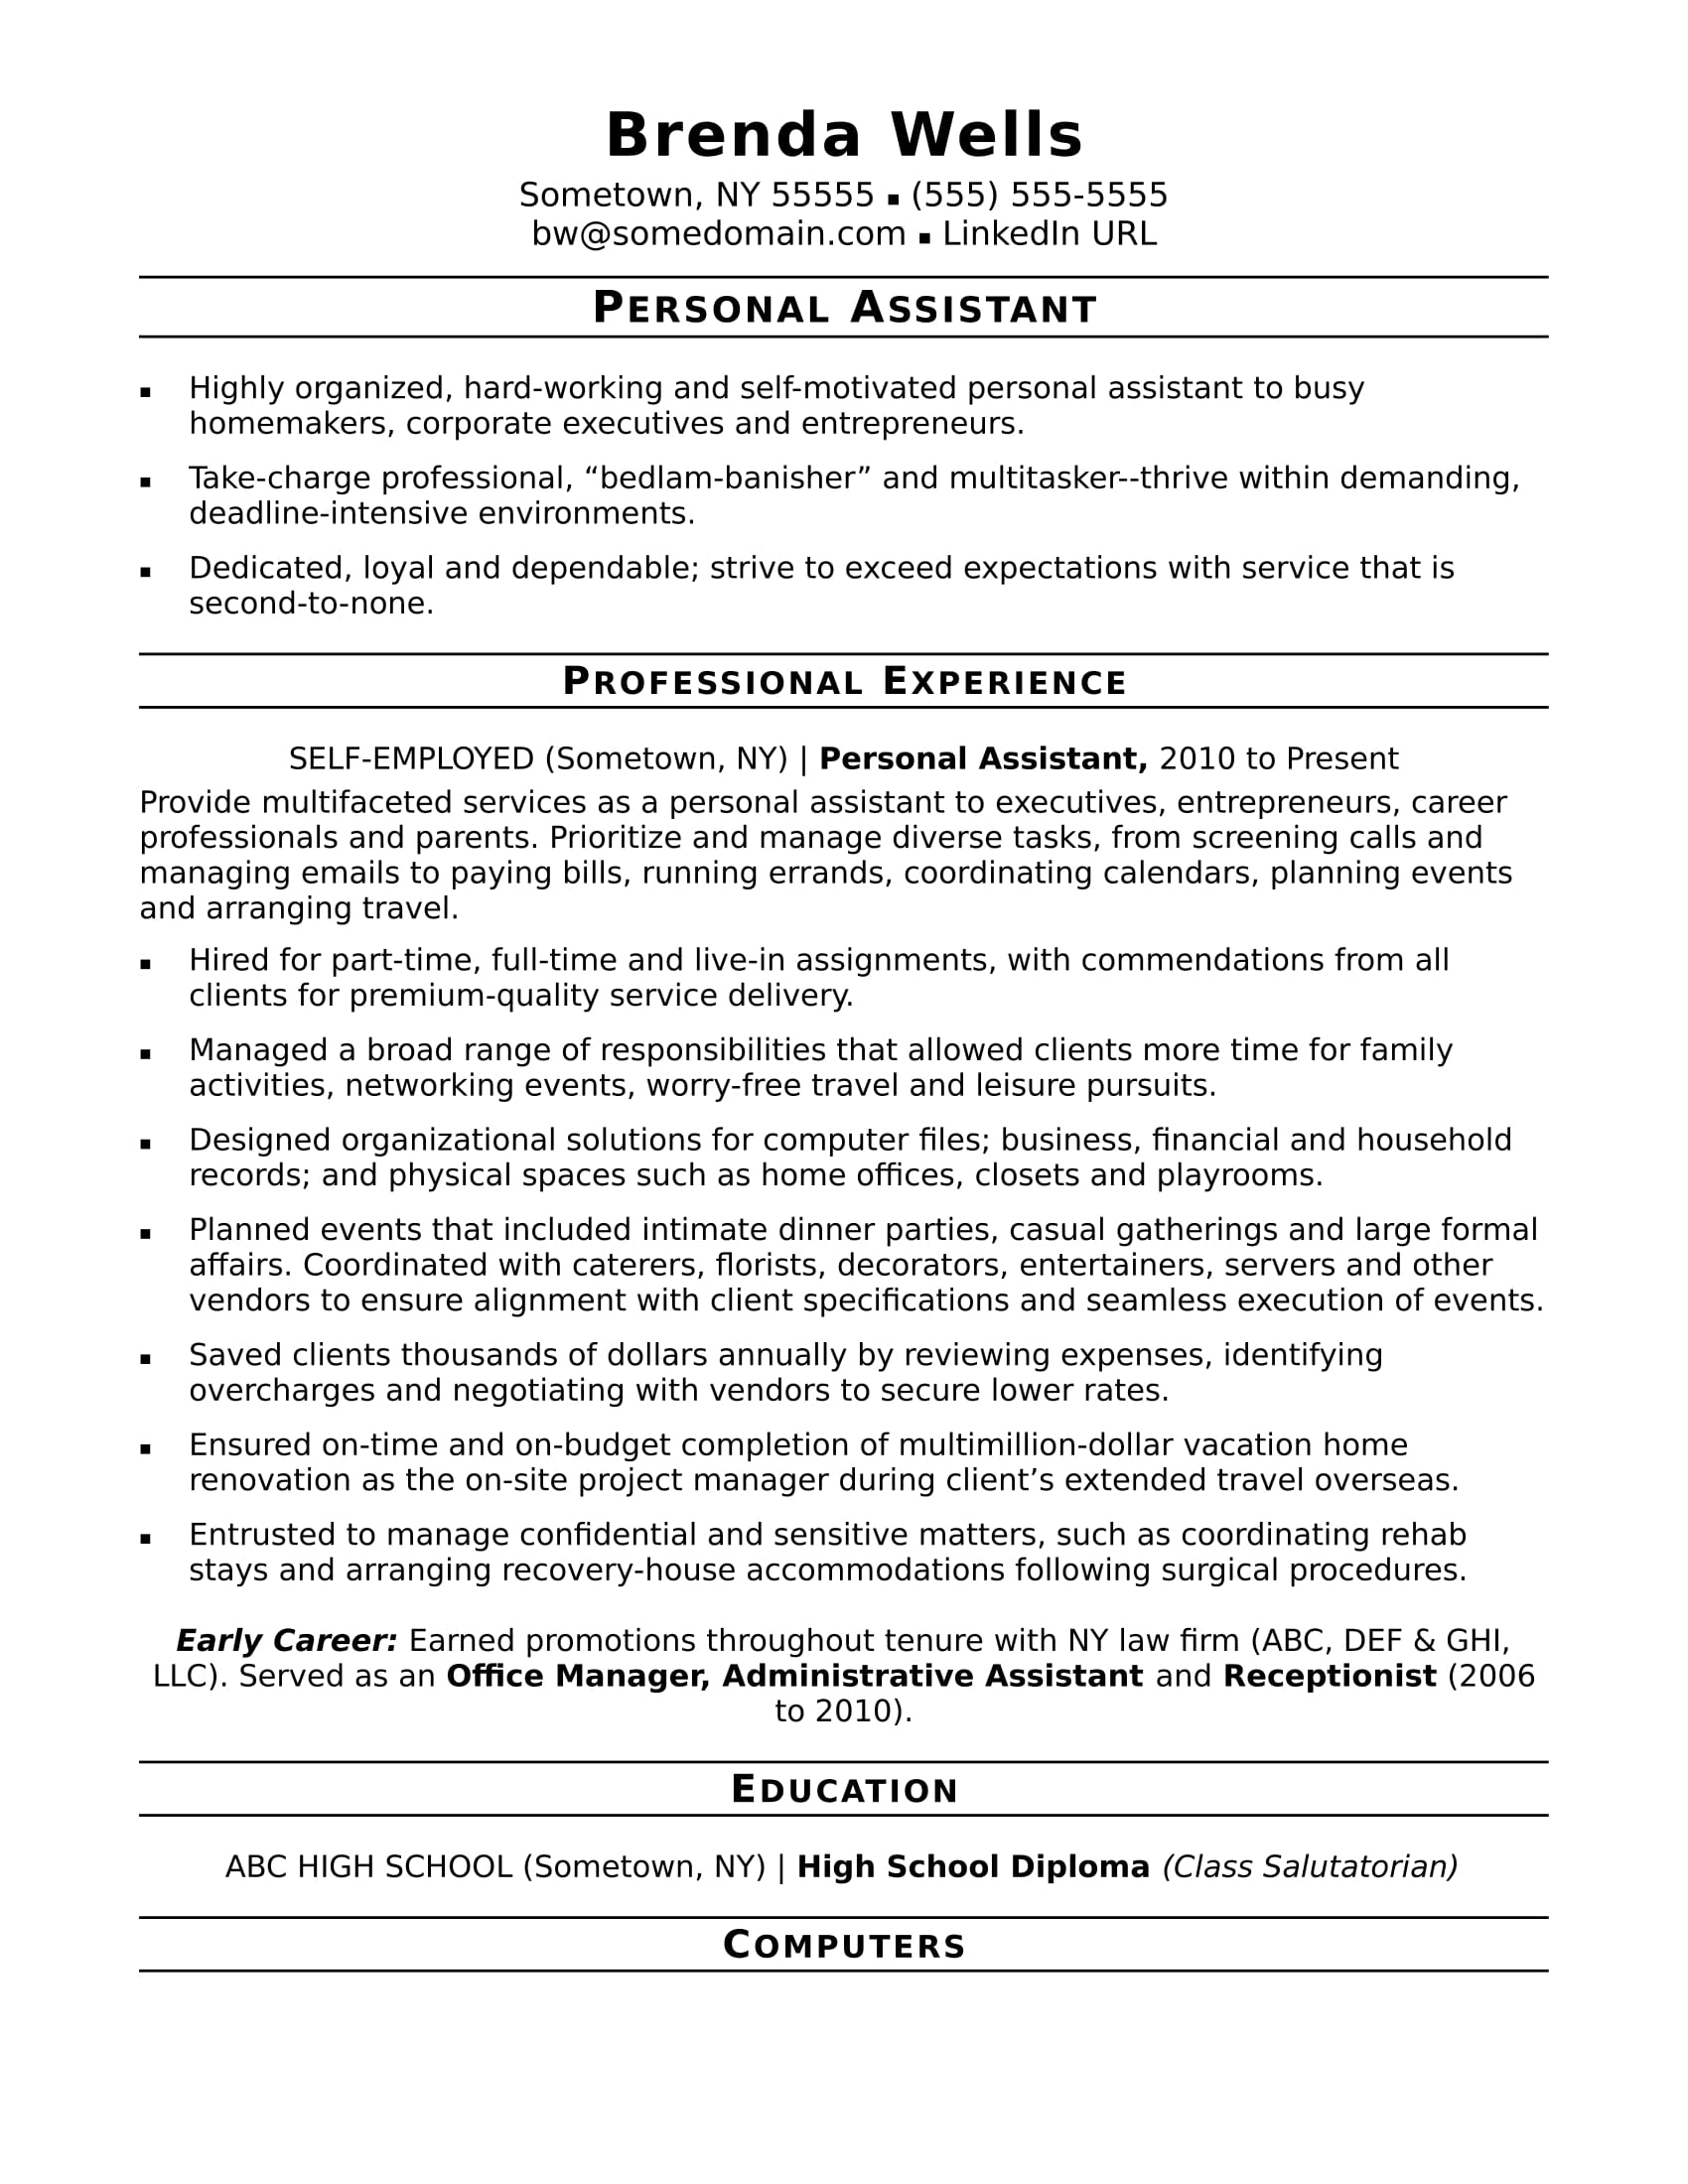 personal assistant resume sample monster professional high school examples elementary Resume Professional High School Resume